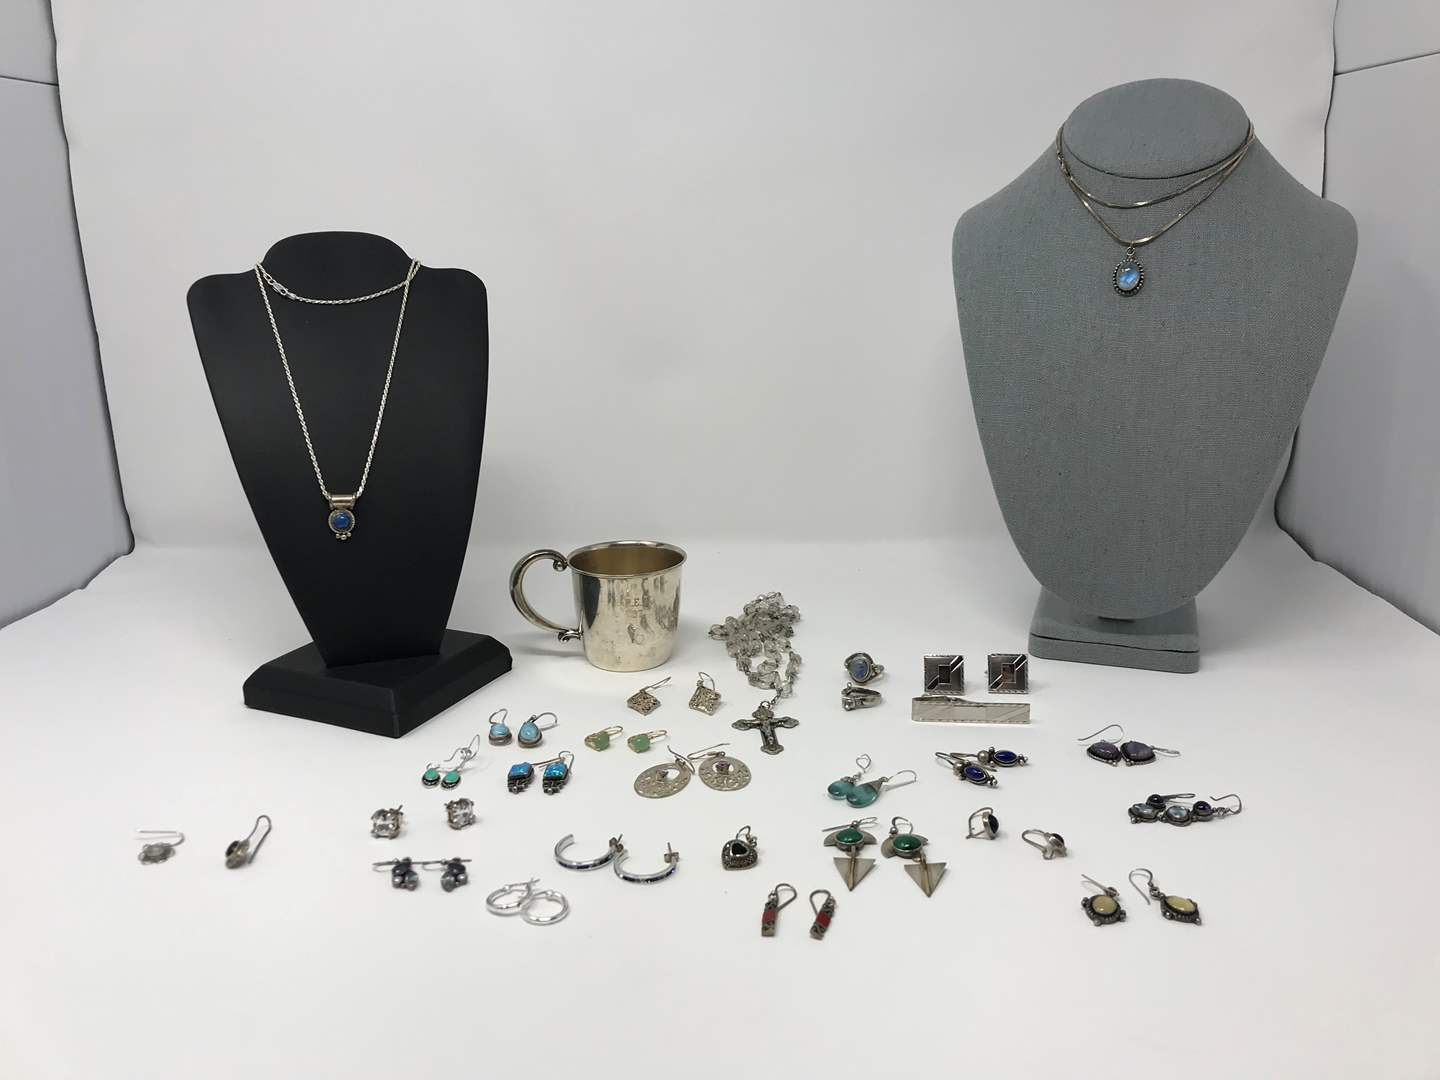 Lot # 222 - Sterling Silver Items: Matching Earrings, Necklaces, Rings, 1937 Baby Cup, Misc. Earrings & More..  (main image)